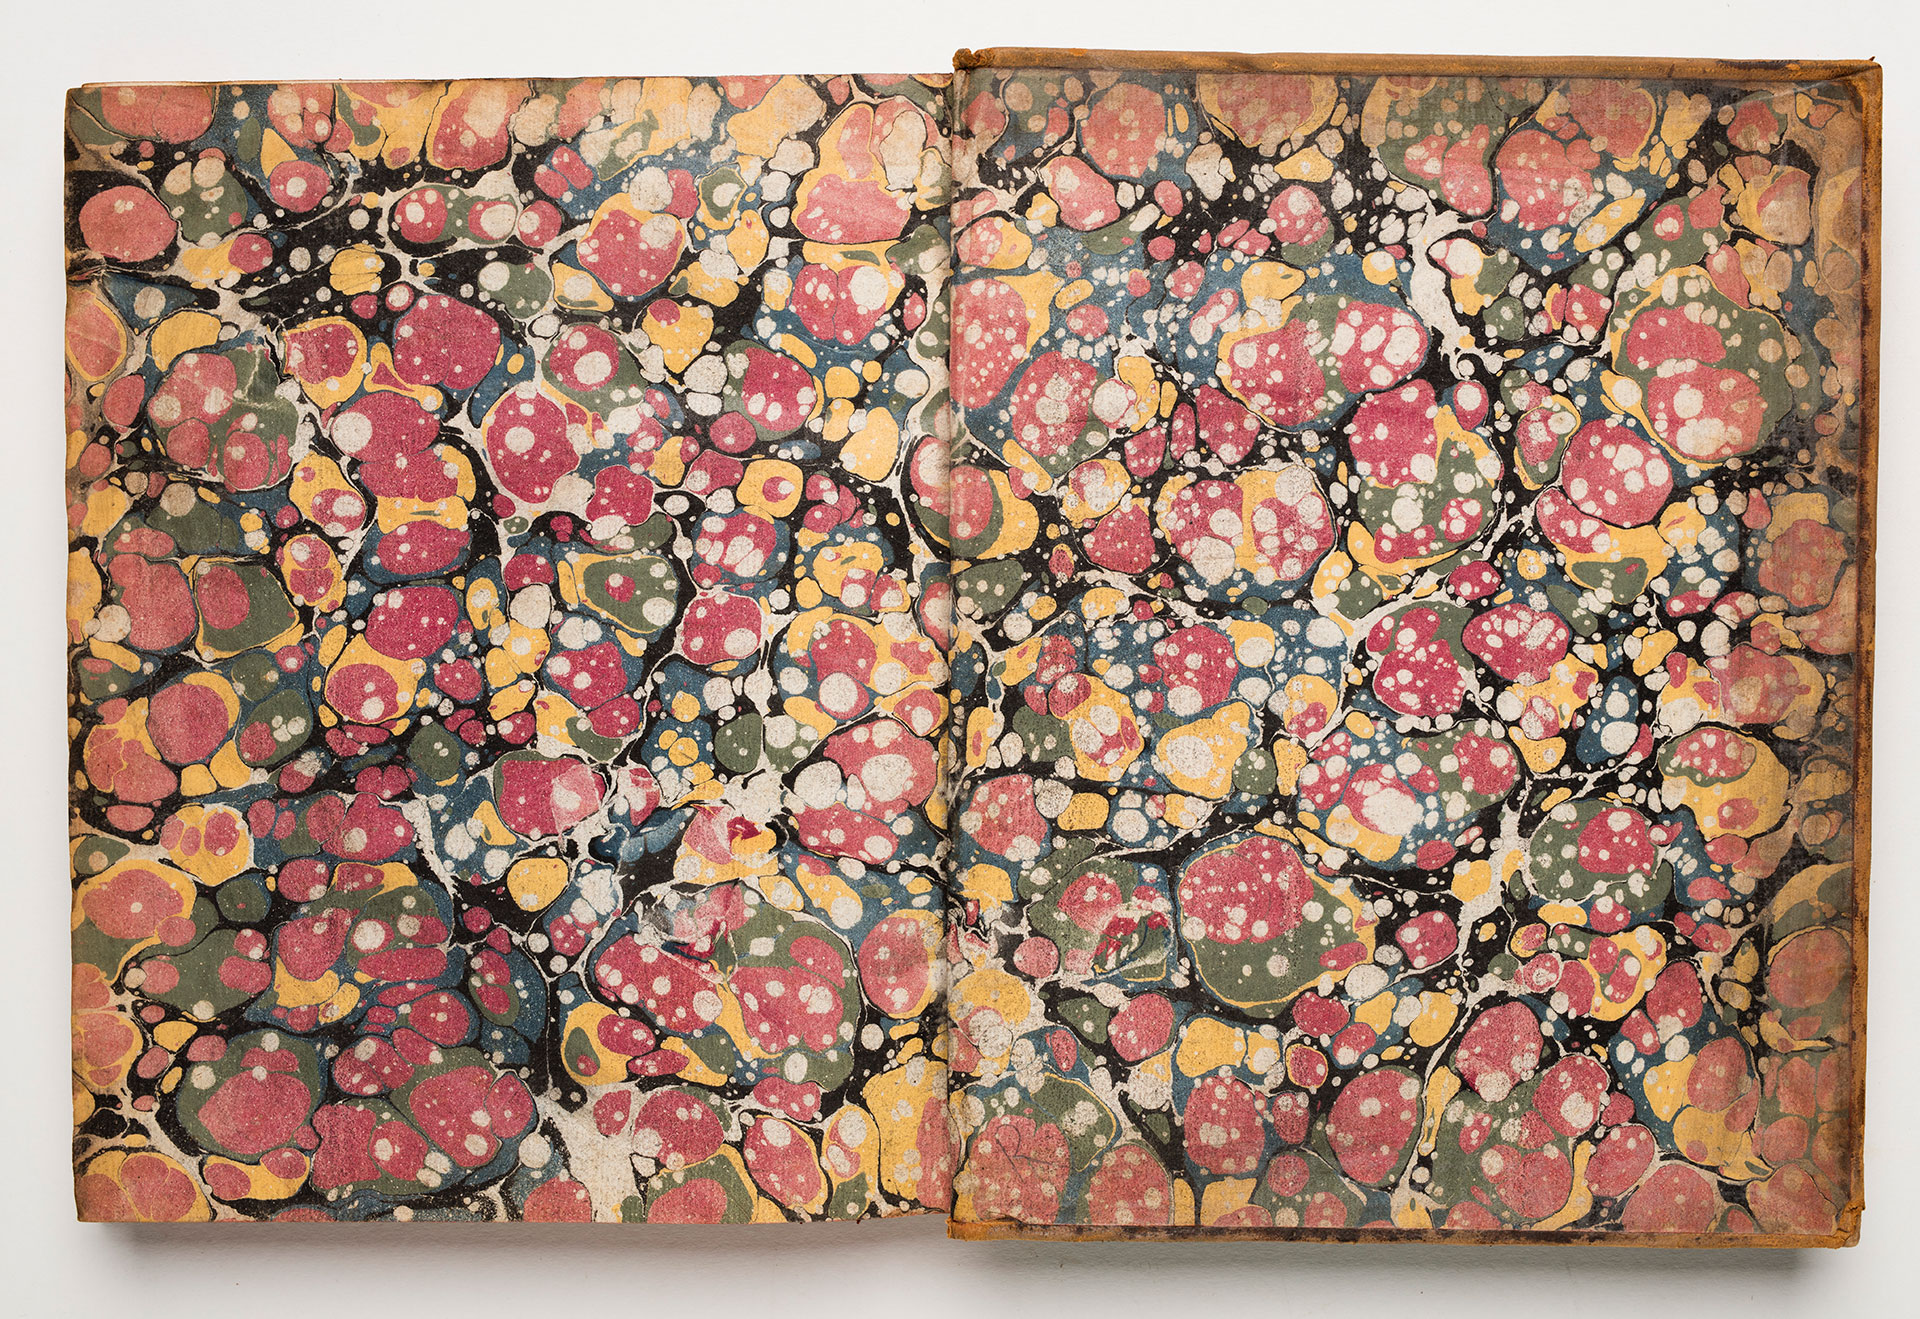 Endpapers with a colourful marbled pattern.